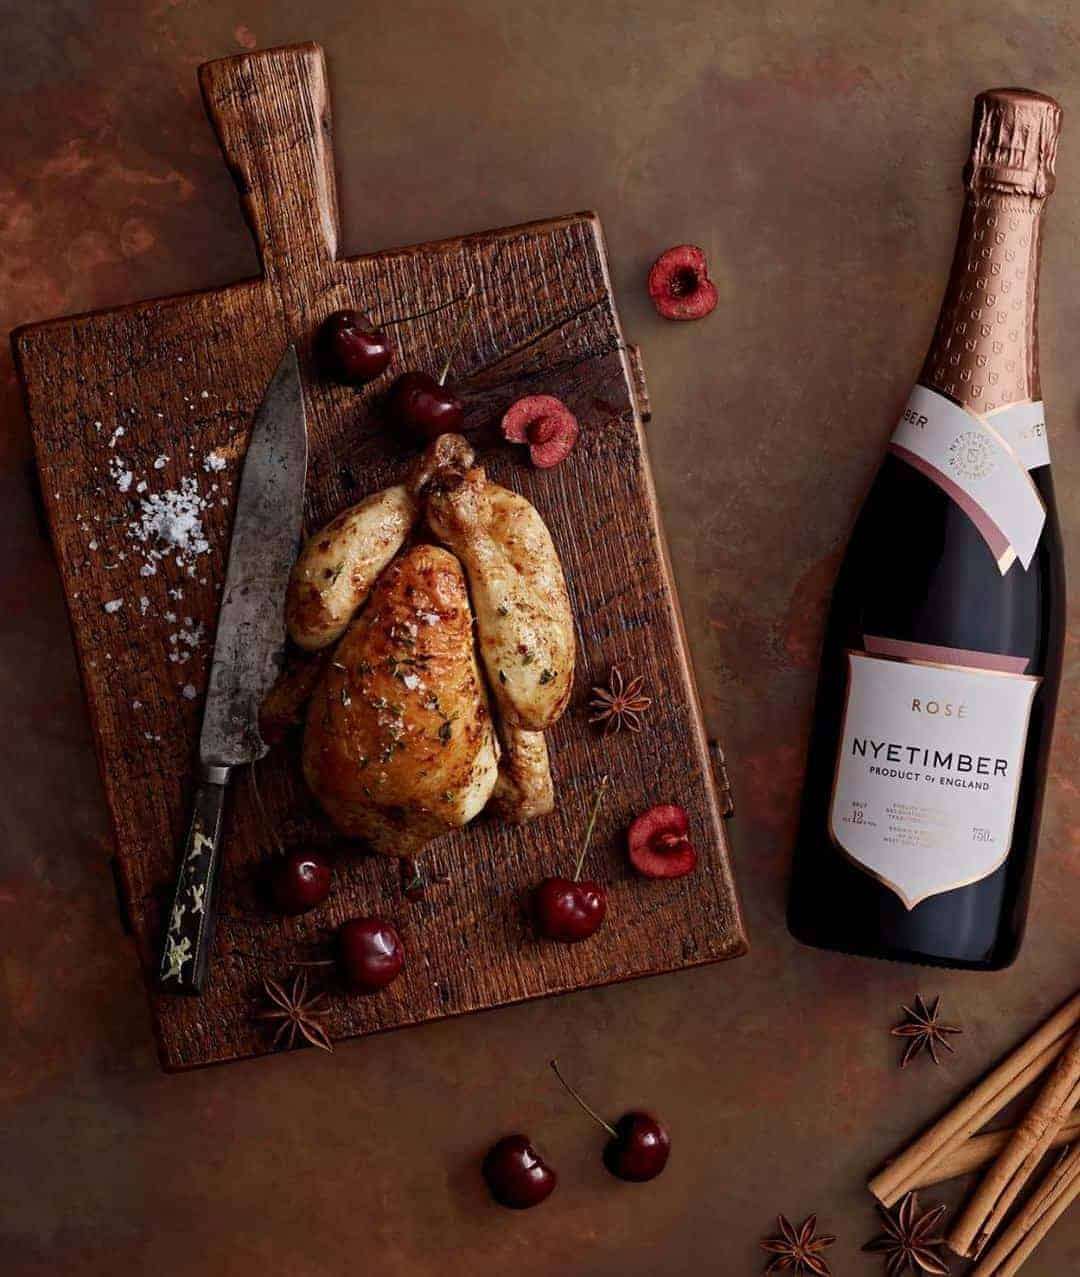 love this sparkling english wine by Nyetimber - perfect Christmas fizz